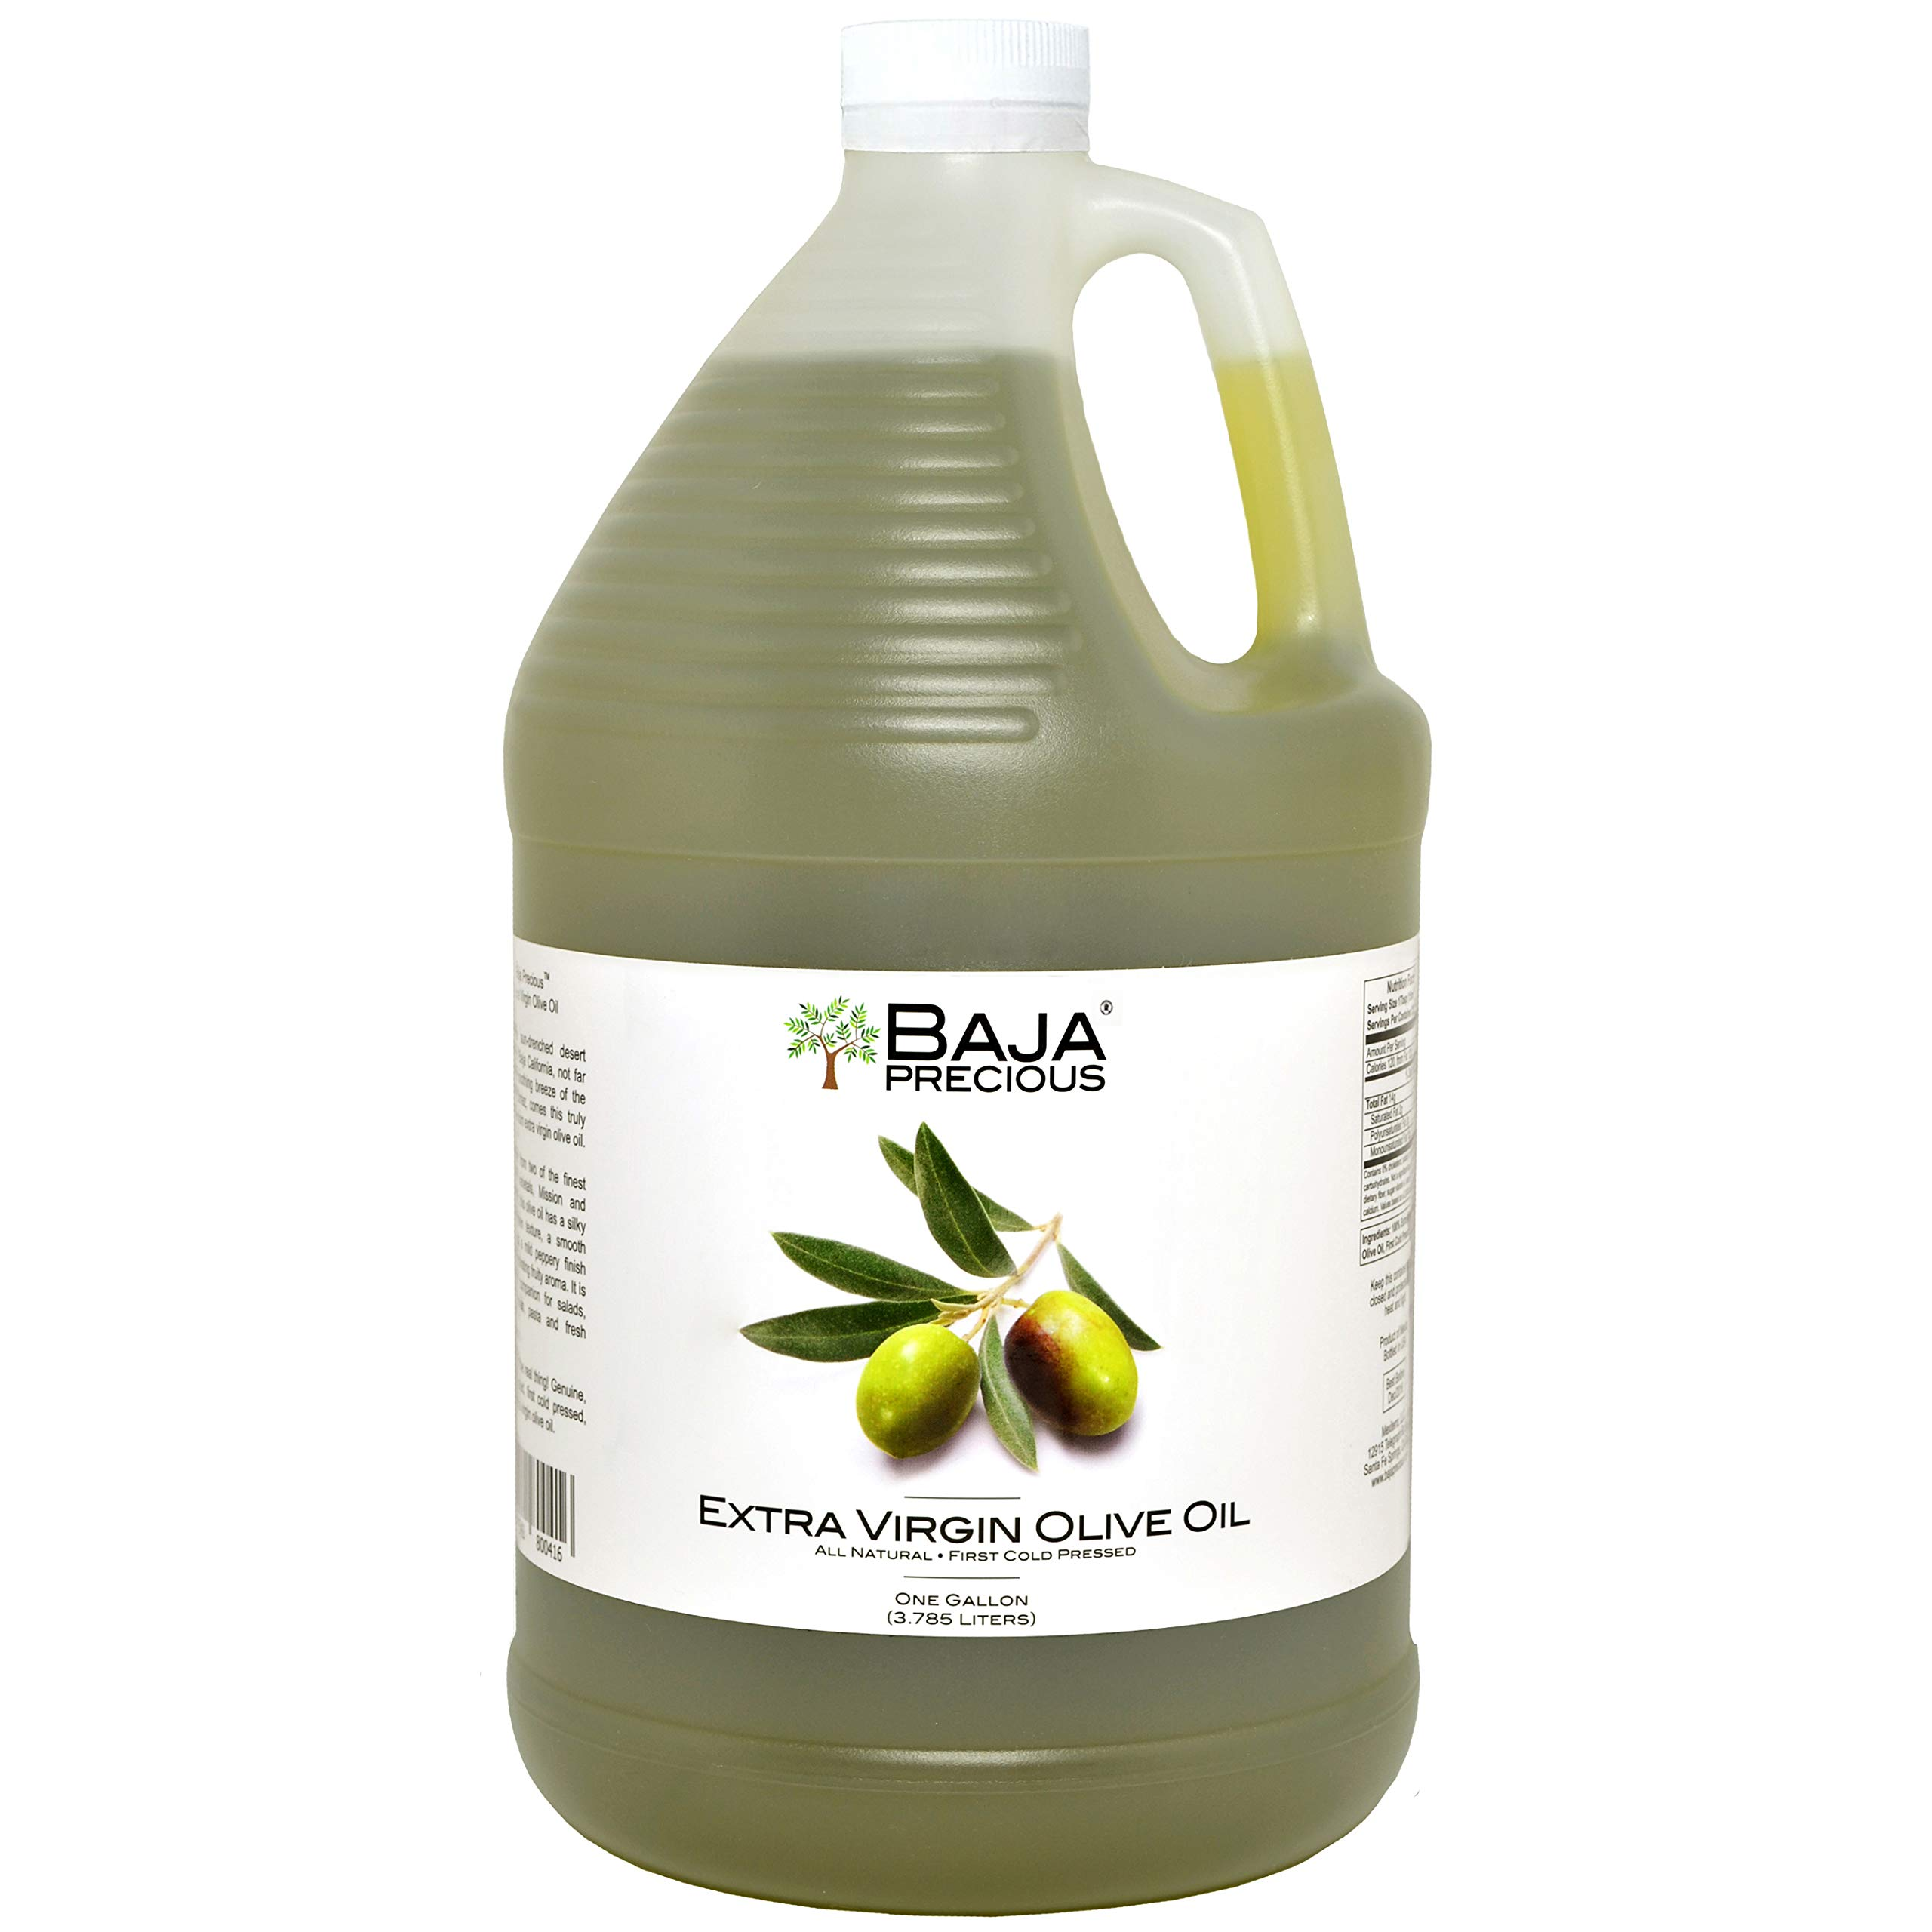 Baja Precious - Extra Virgin Olive Oil, 1 Gallon